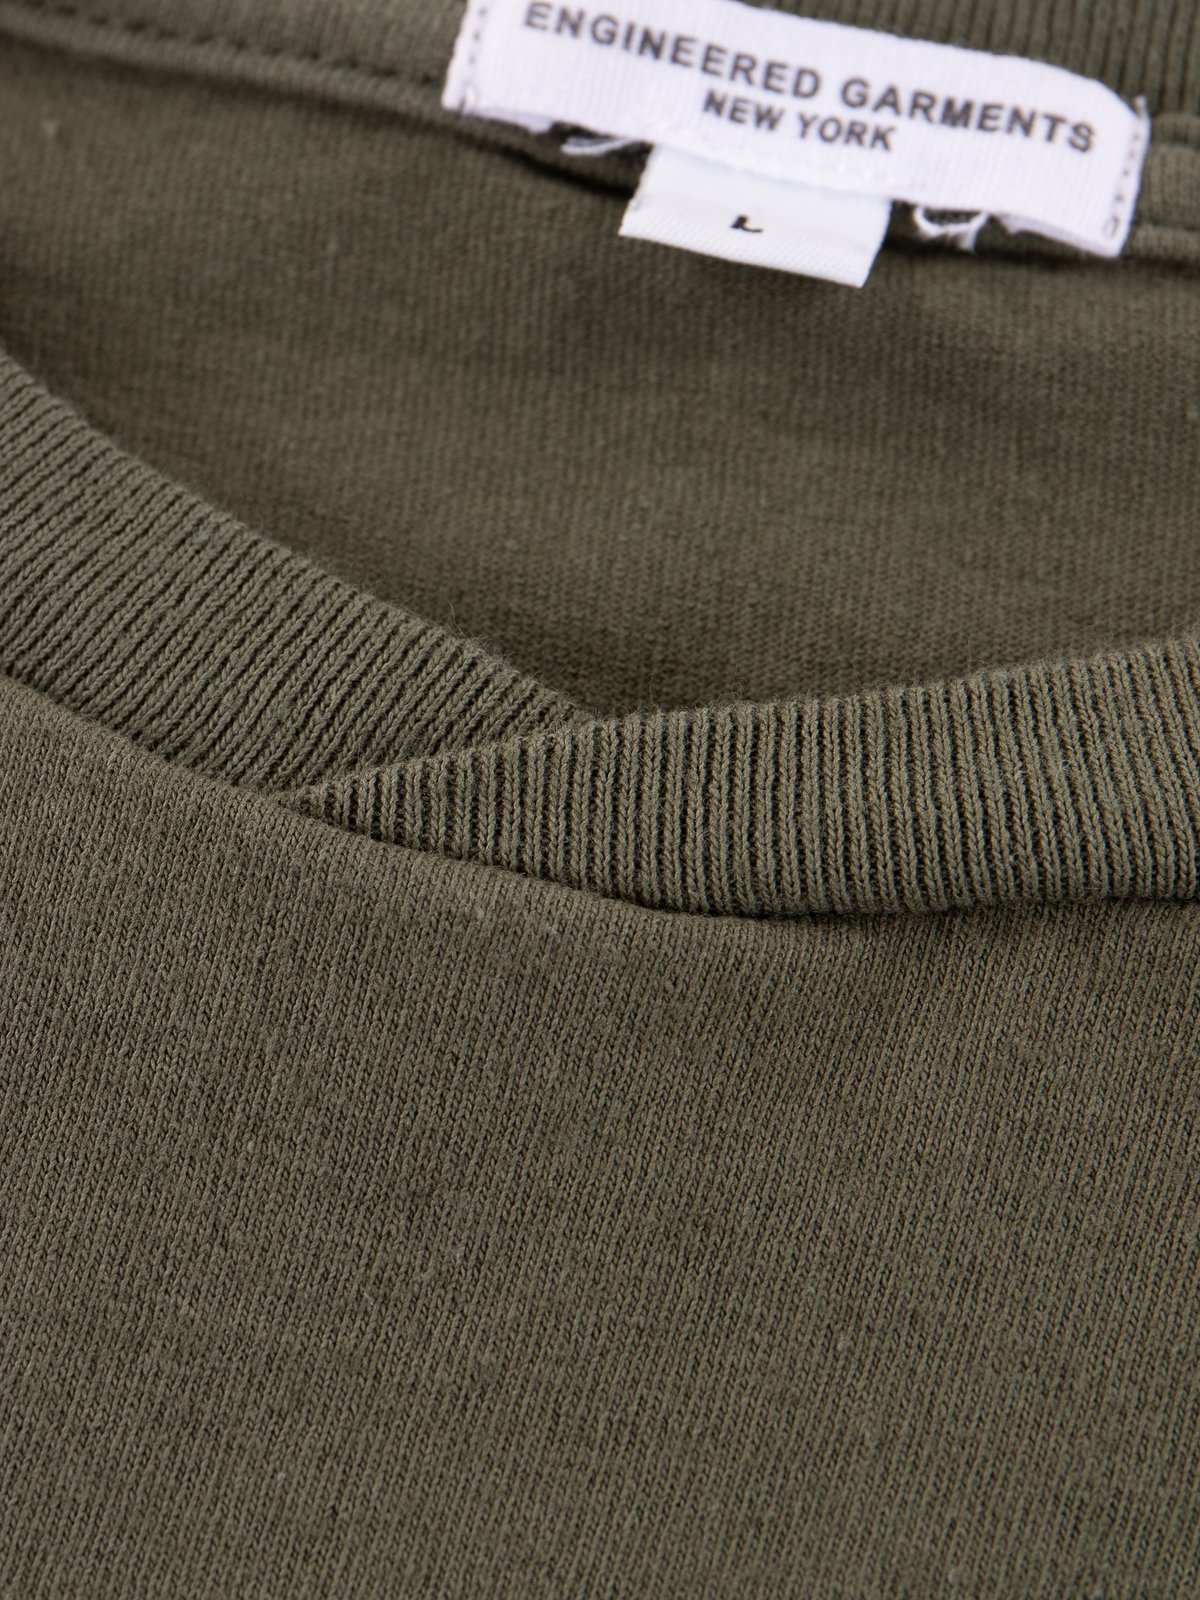 Olive Everyone Crossover Crew Pocket Tee - Image 6